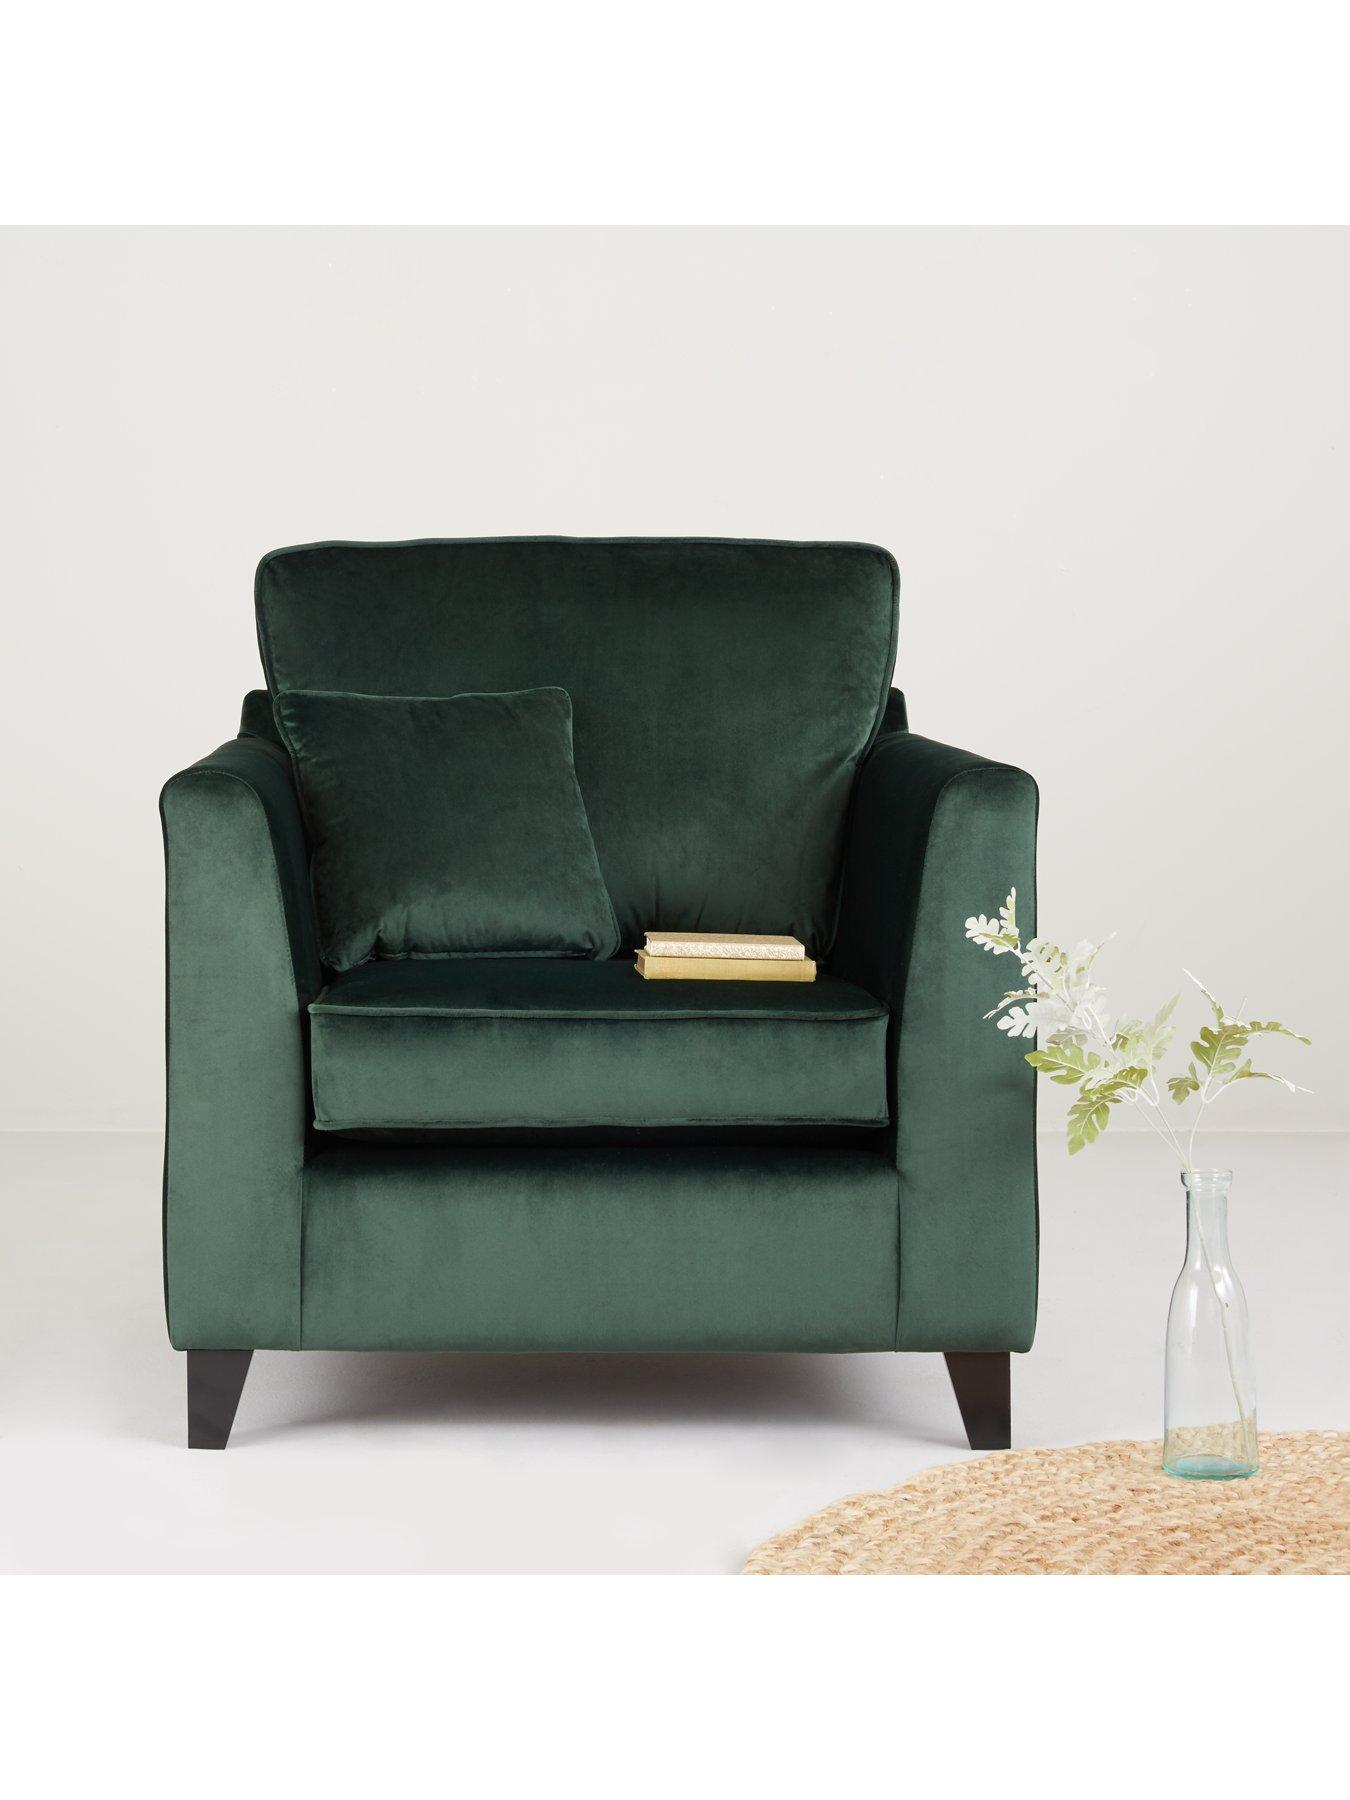 Green velvet armchair - home accessories inspiration| Today we're talking inspiration for adding green to your living room. Green is a really versatile colour to decorate your home with. But, which colours and tones work well? What kind of accessories work with green? This post gives you ideas for pulling together an elegant green colour palette and pieces for your home. Read more: kittyandb.com #greenlivingroom #greenaccessories #greencolorpalette #interiordecoratinginspiration #greenaesthetic #greenarmchair